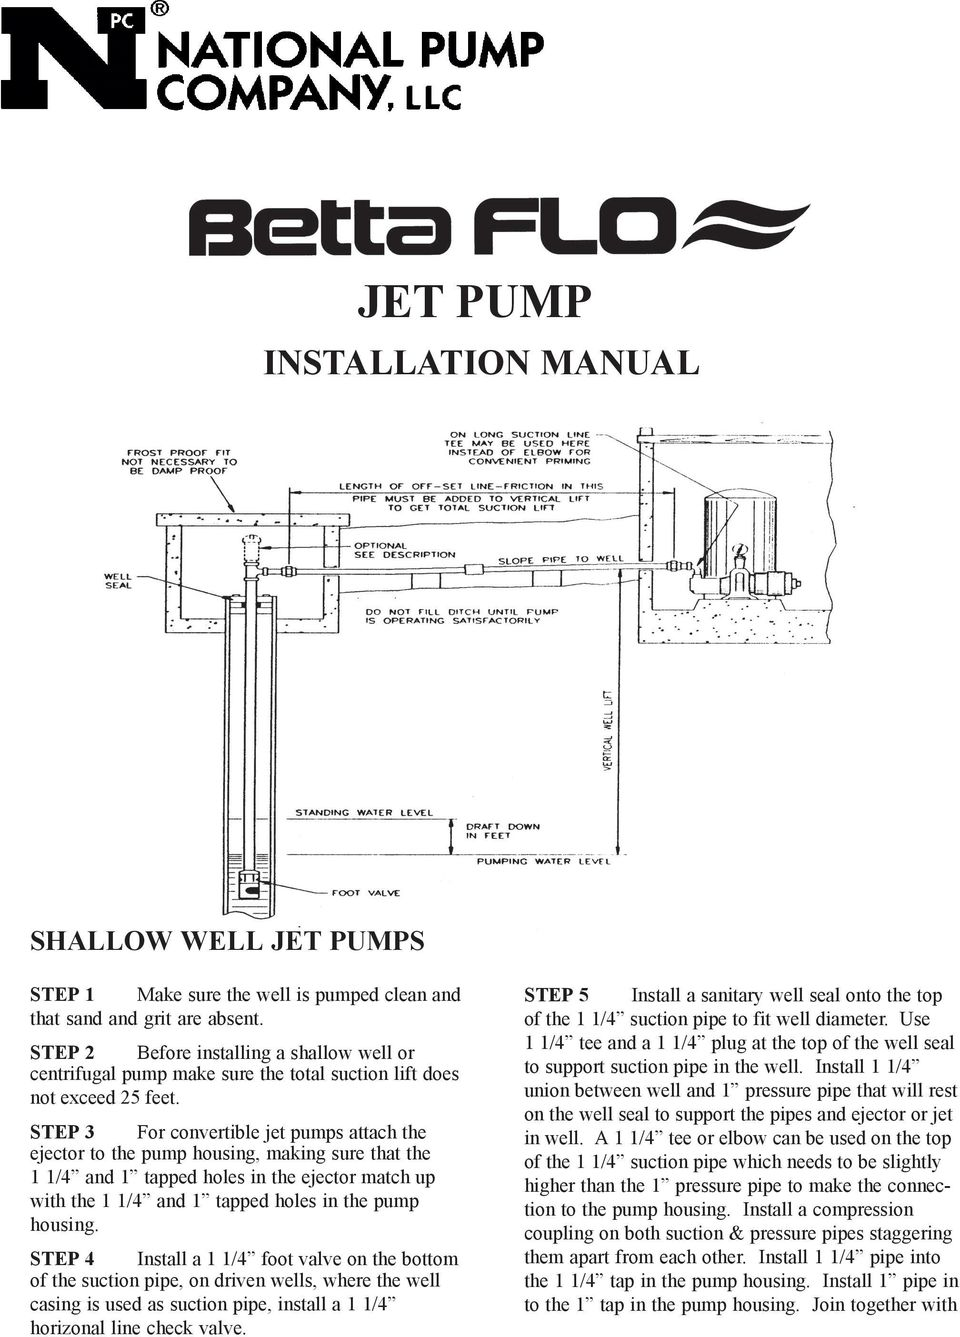 jet pump installation manual shallow well jet pumps pdf step 3 for convertible jet pumps attach the ejector to the pump housing making sure